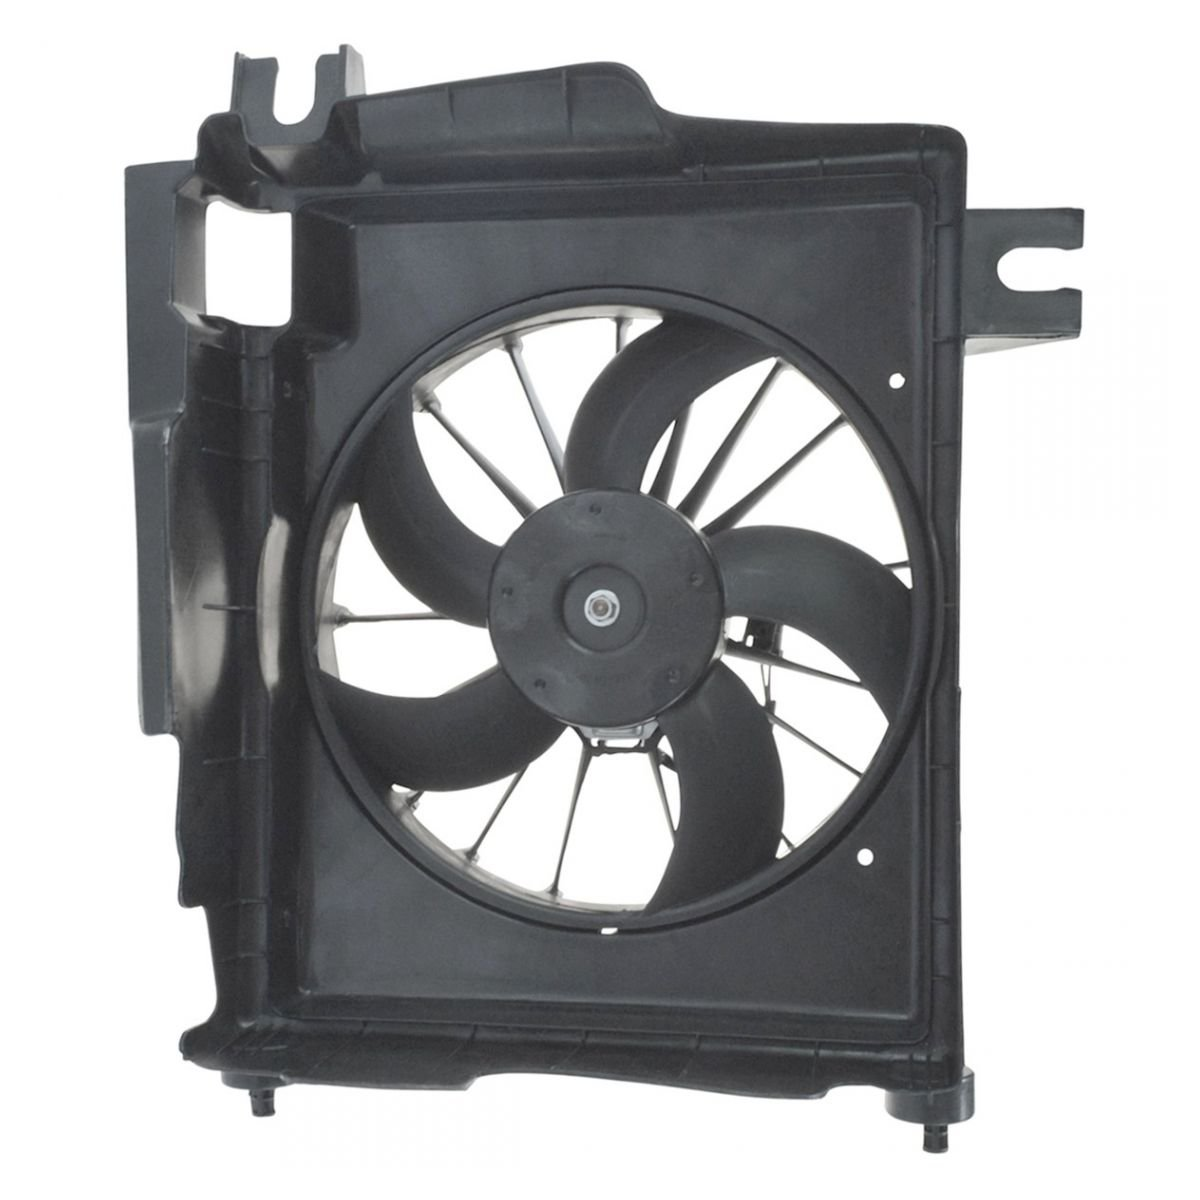 Radiator A/C AC Condenser Cooling Fan & Motor for Dodge Ram Pickup Truck